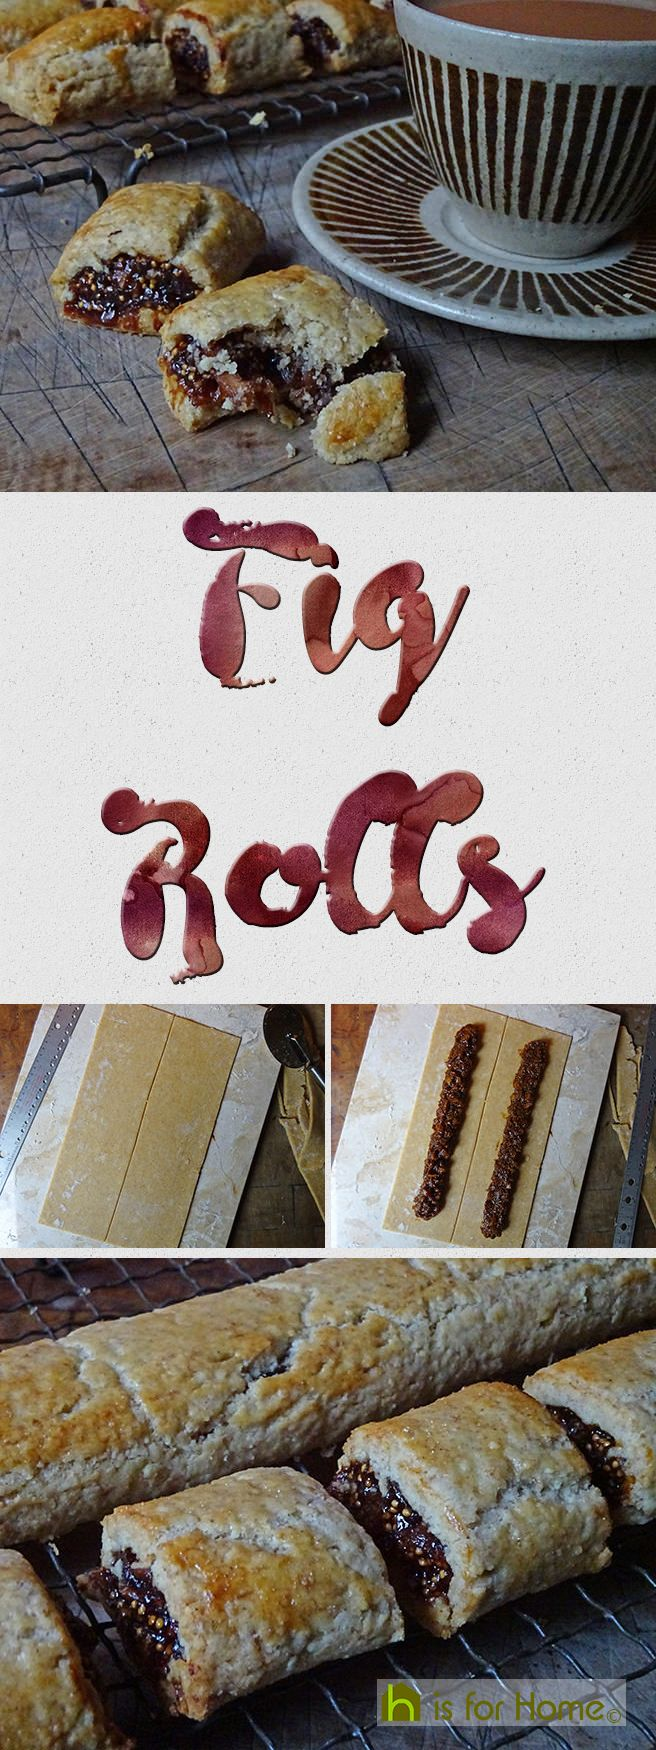 Home-made fig rolls | H is for Home  #recipe #biscuits #cooking #cookery